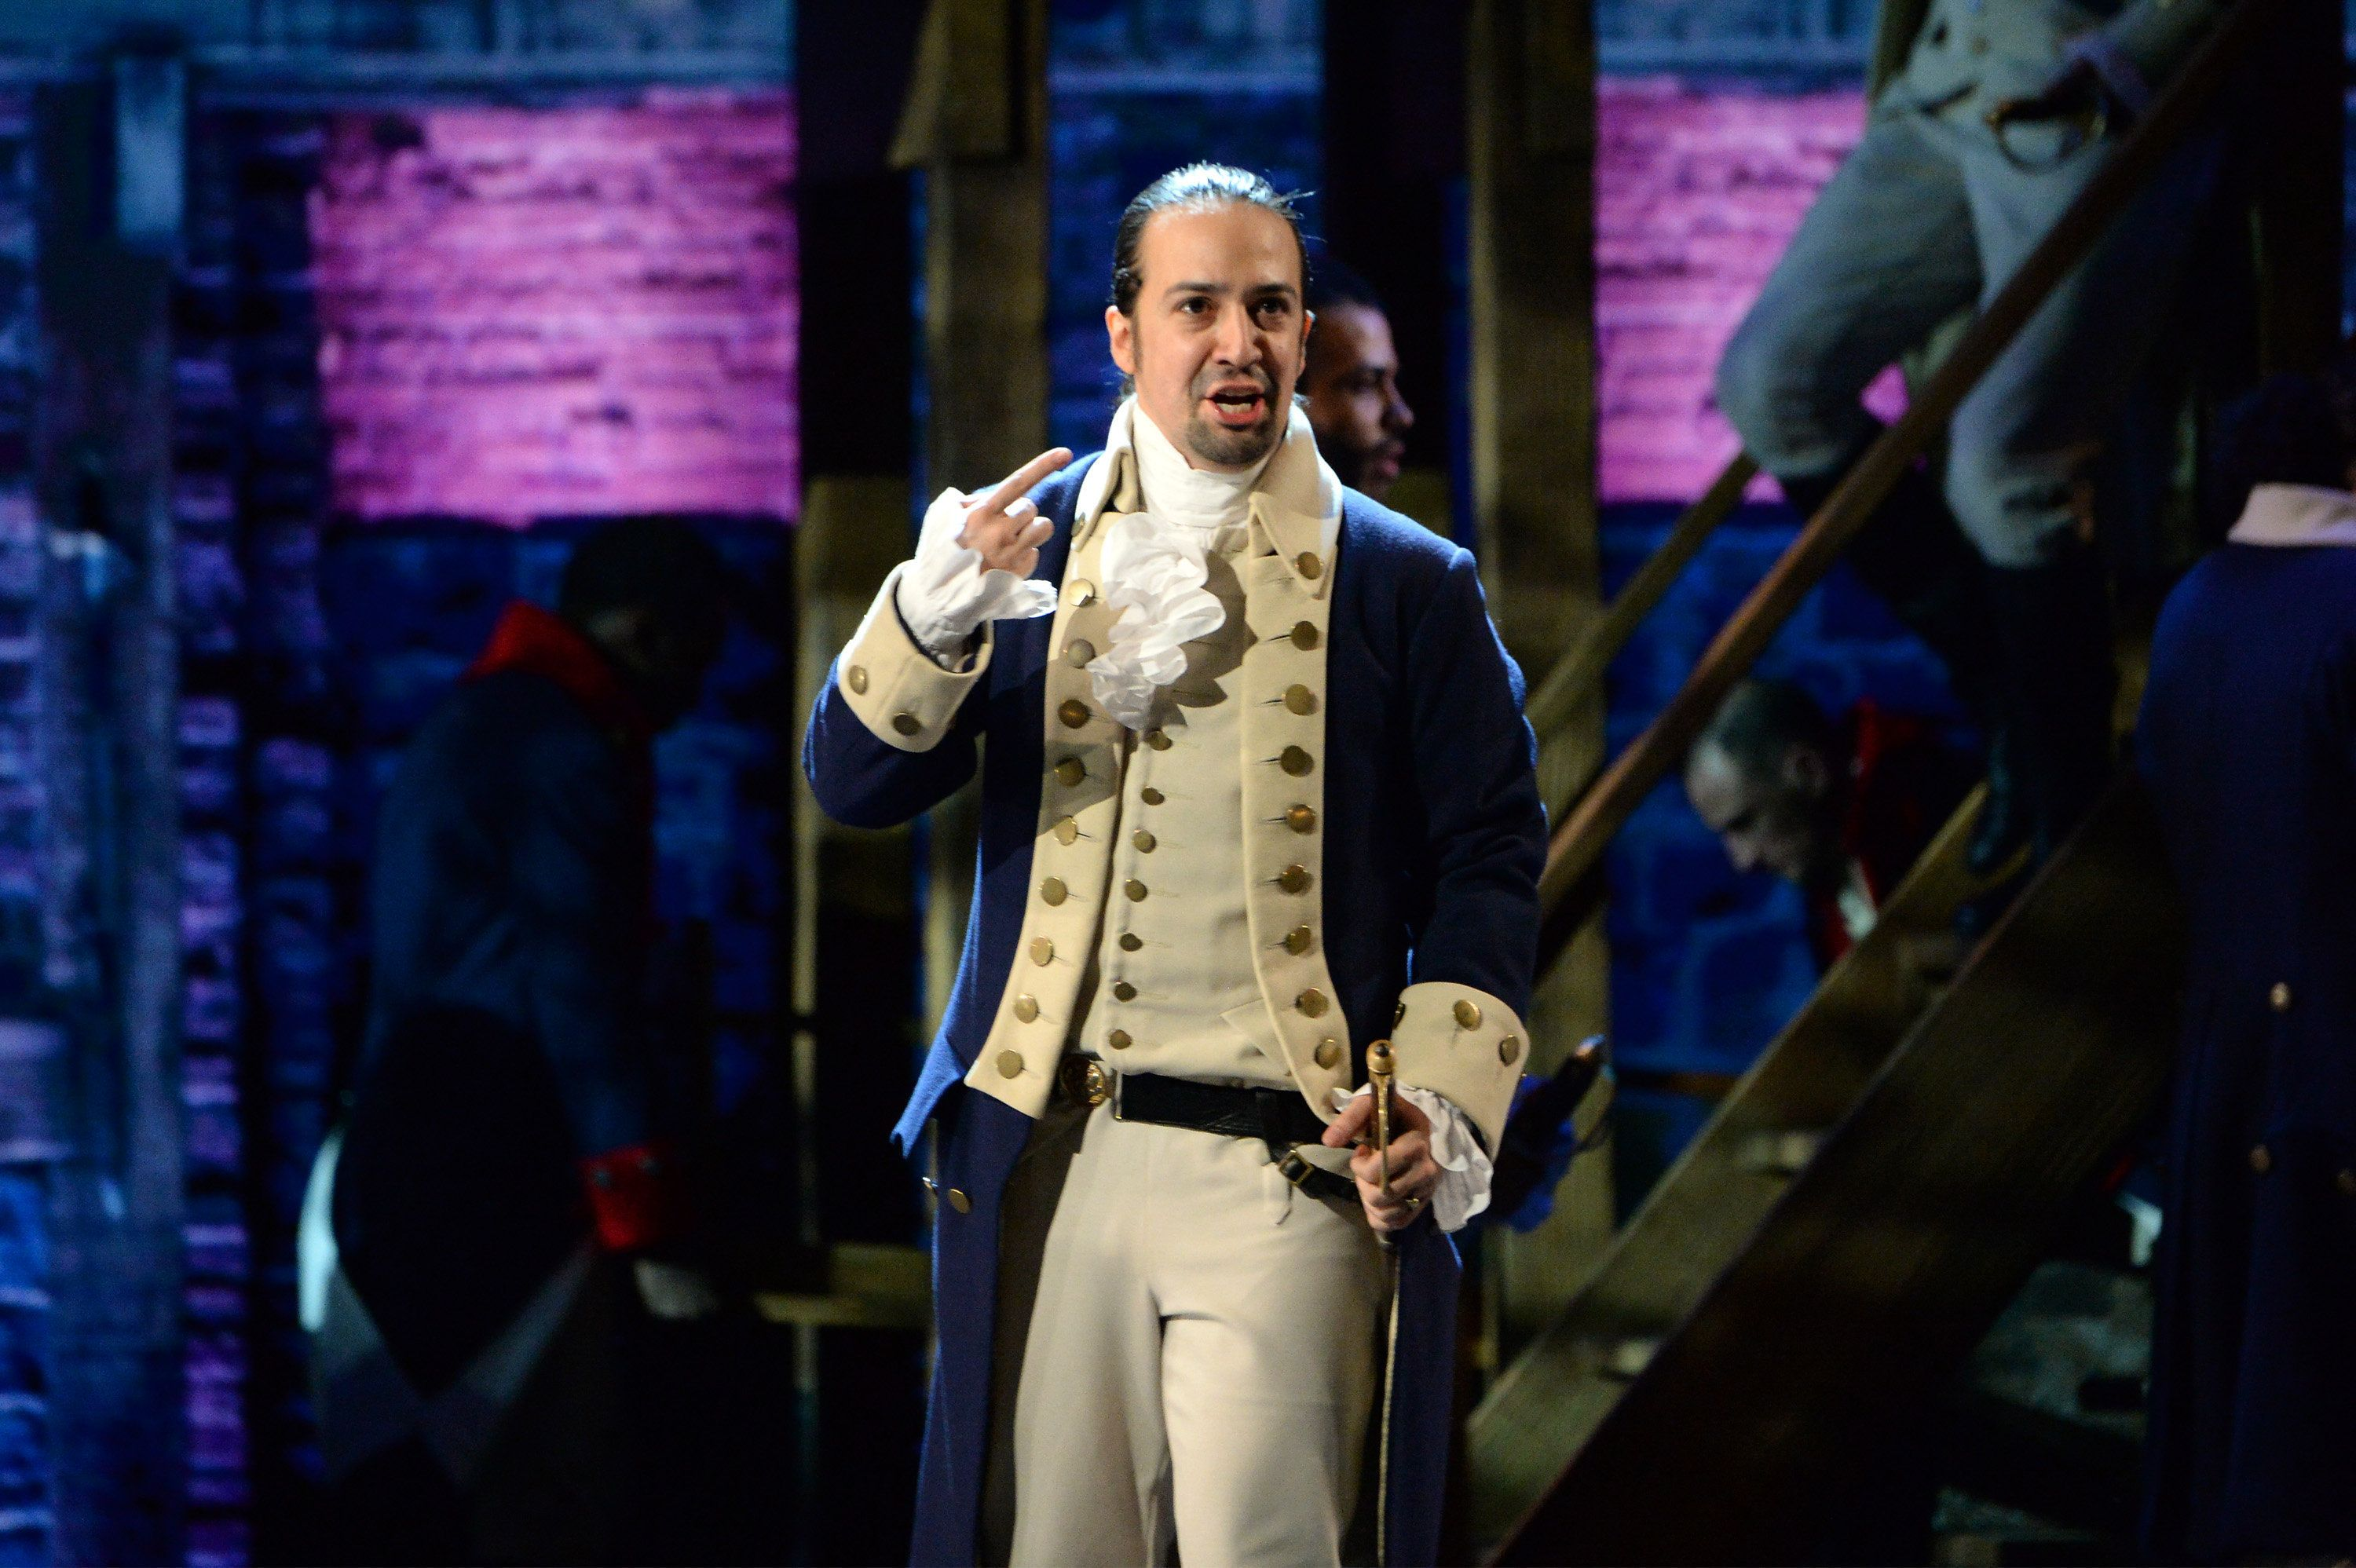 NEW YORK, NY - JUNE 12:  Lin-Manuel Miranda of 'Hamilton' performs onstage during the 70th Annual Tony Awards at The Beacon Theatre on June 12, 2016 in New York City.  (Photo by Kevin Mazur/Getty Images for Tony Awards Productions)